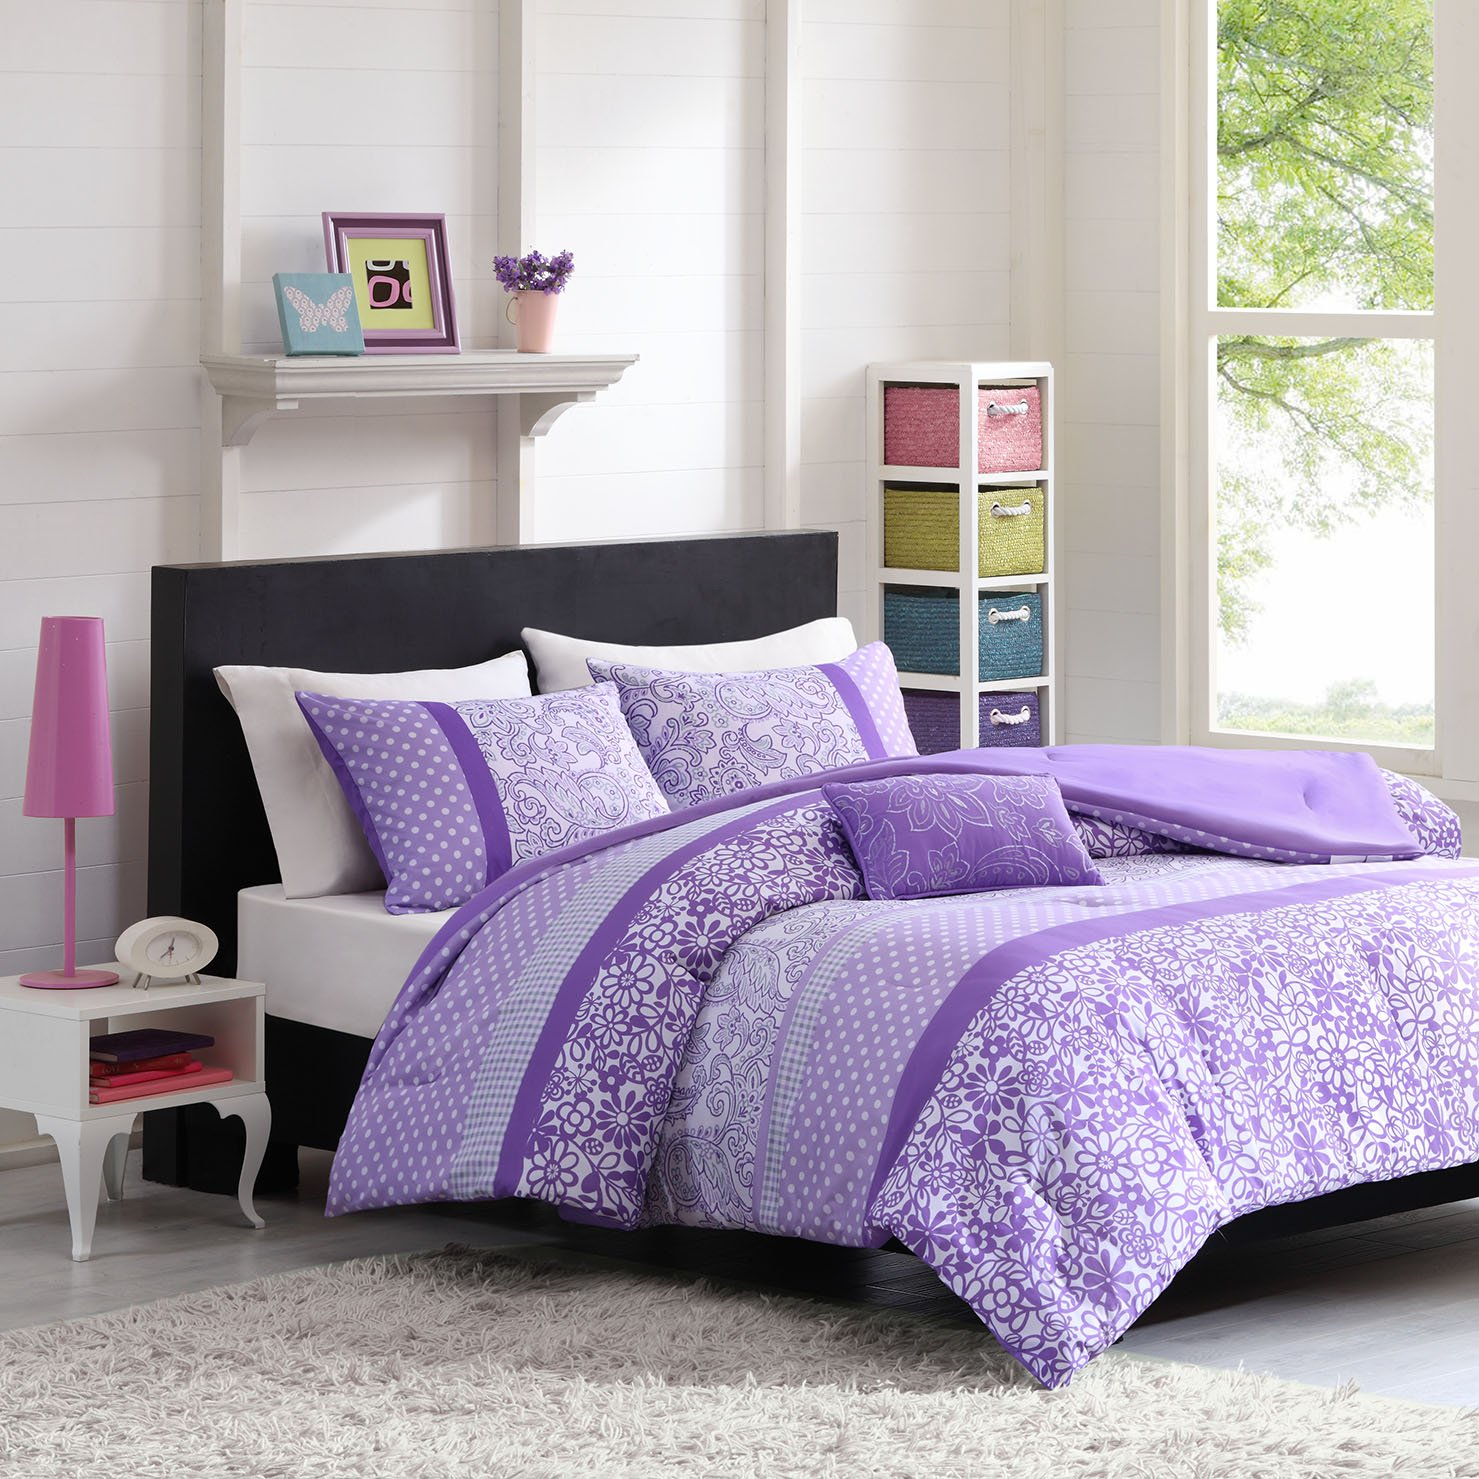 Amazon.com: Mizone Riley 3 Piece Comforter Set, Twin/Twin X-Large ... : purple quilt sets - Adamdwight.com